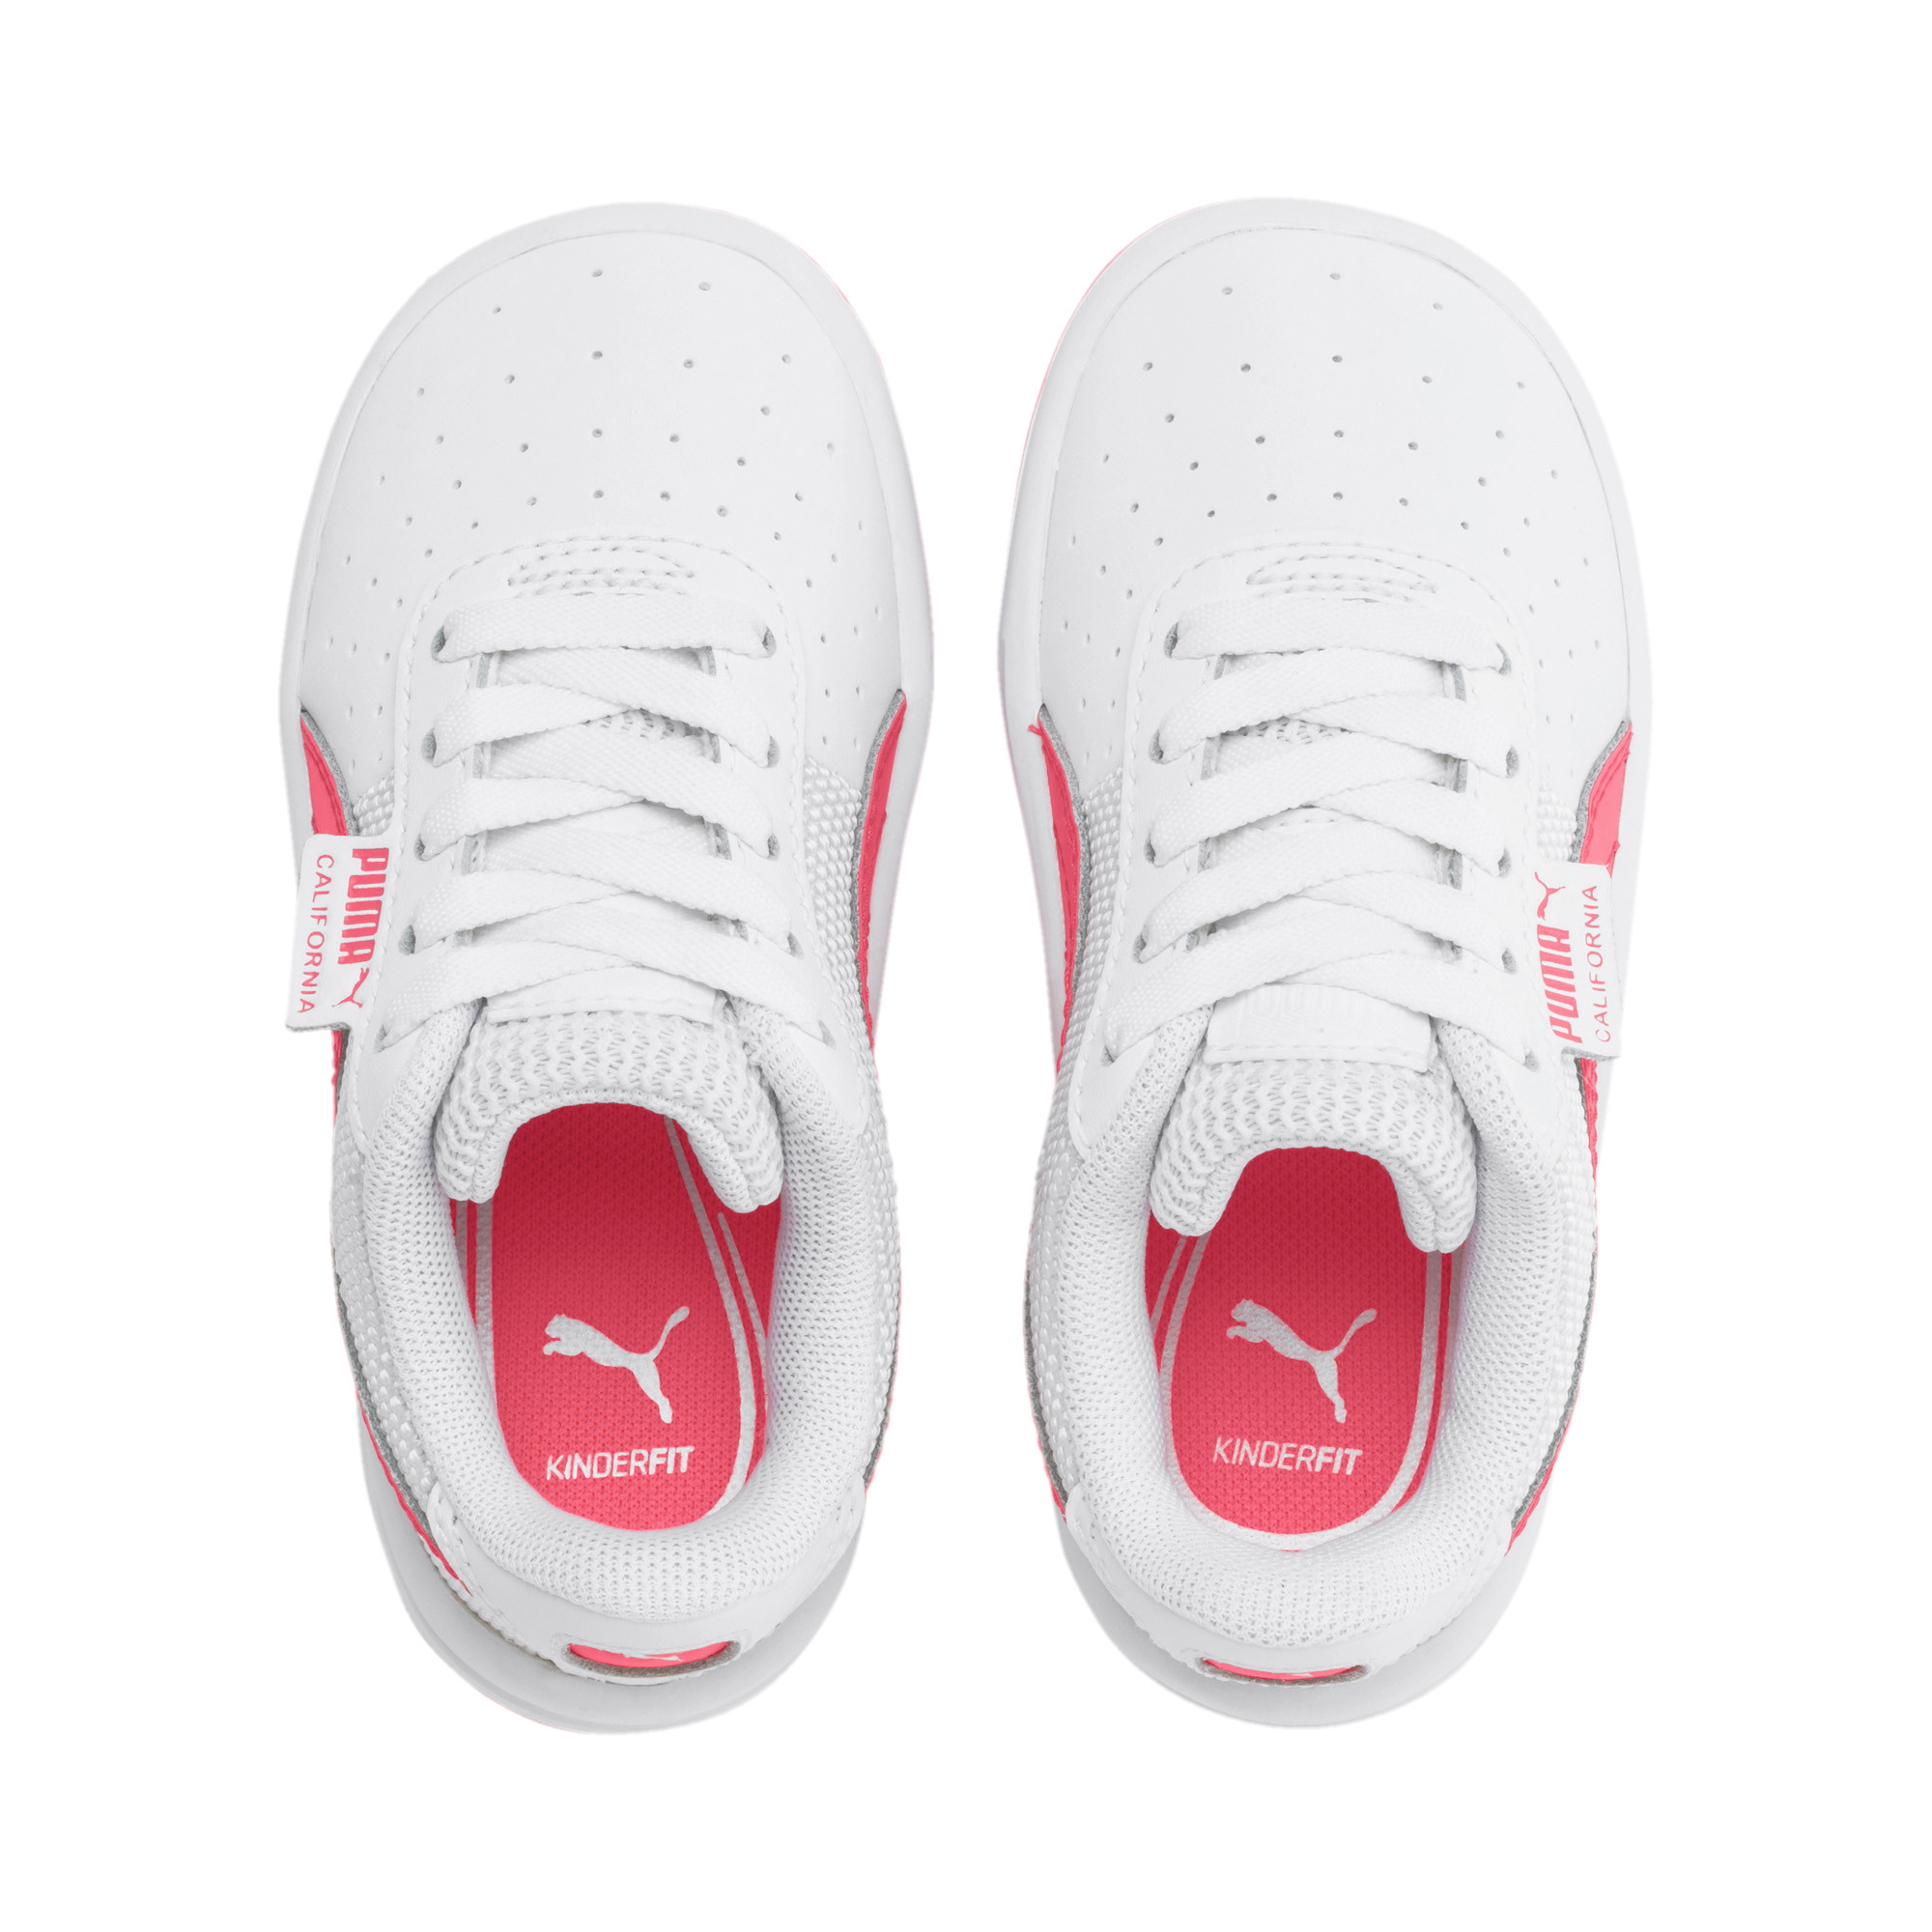 PUMA-California-Toddler-Shoes-Kids-Shoe-Kids thumbnail 13